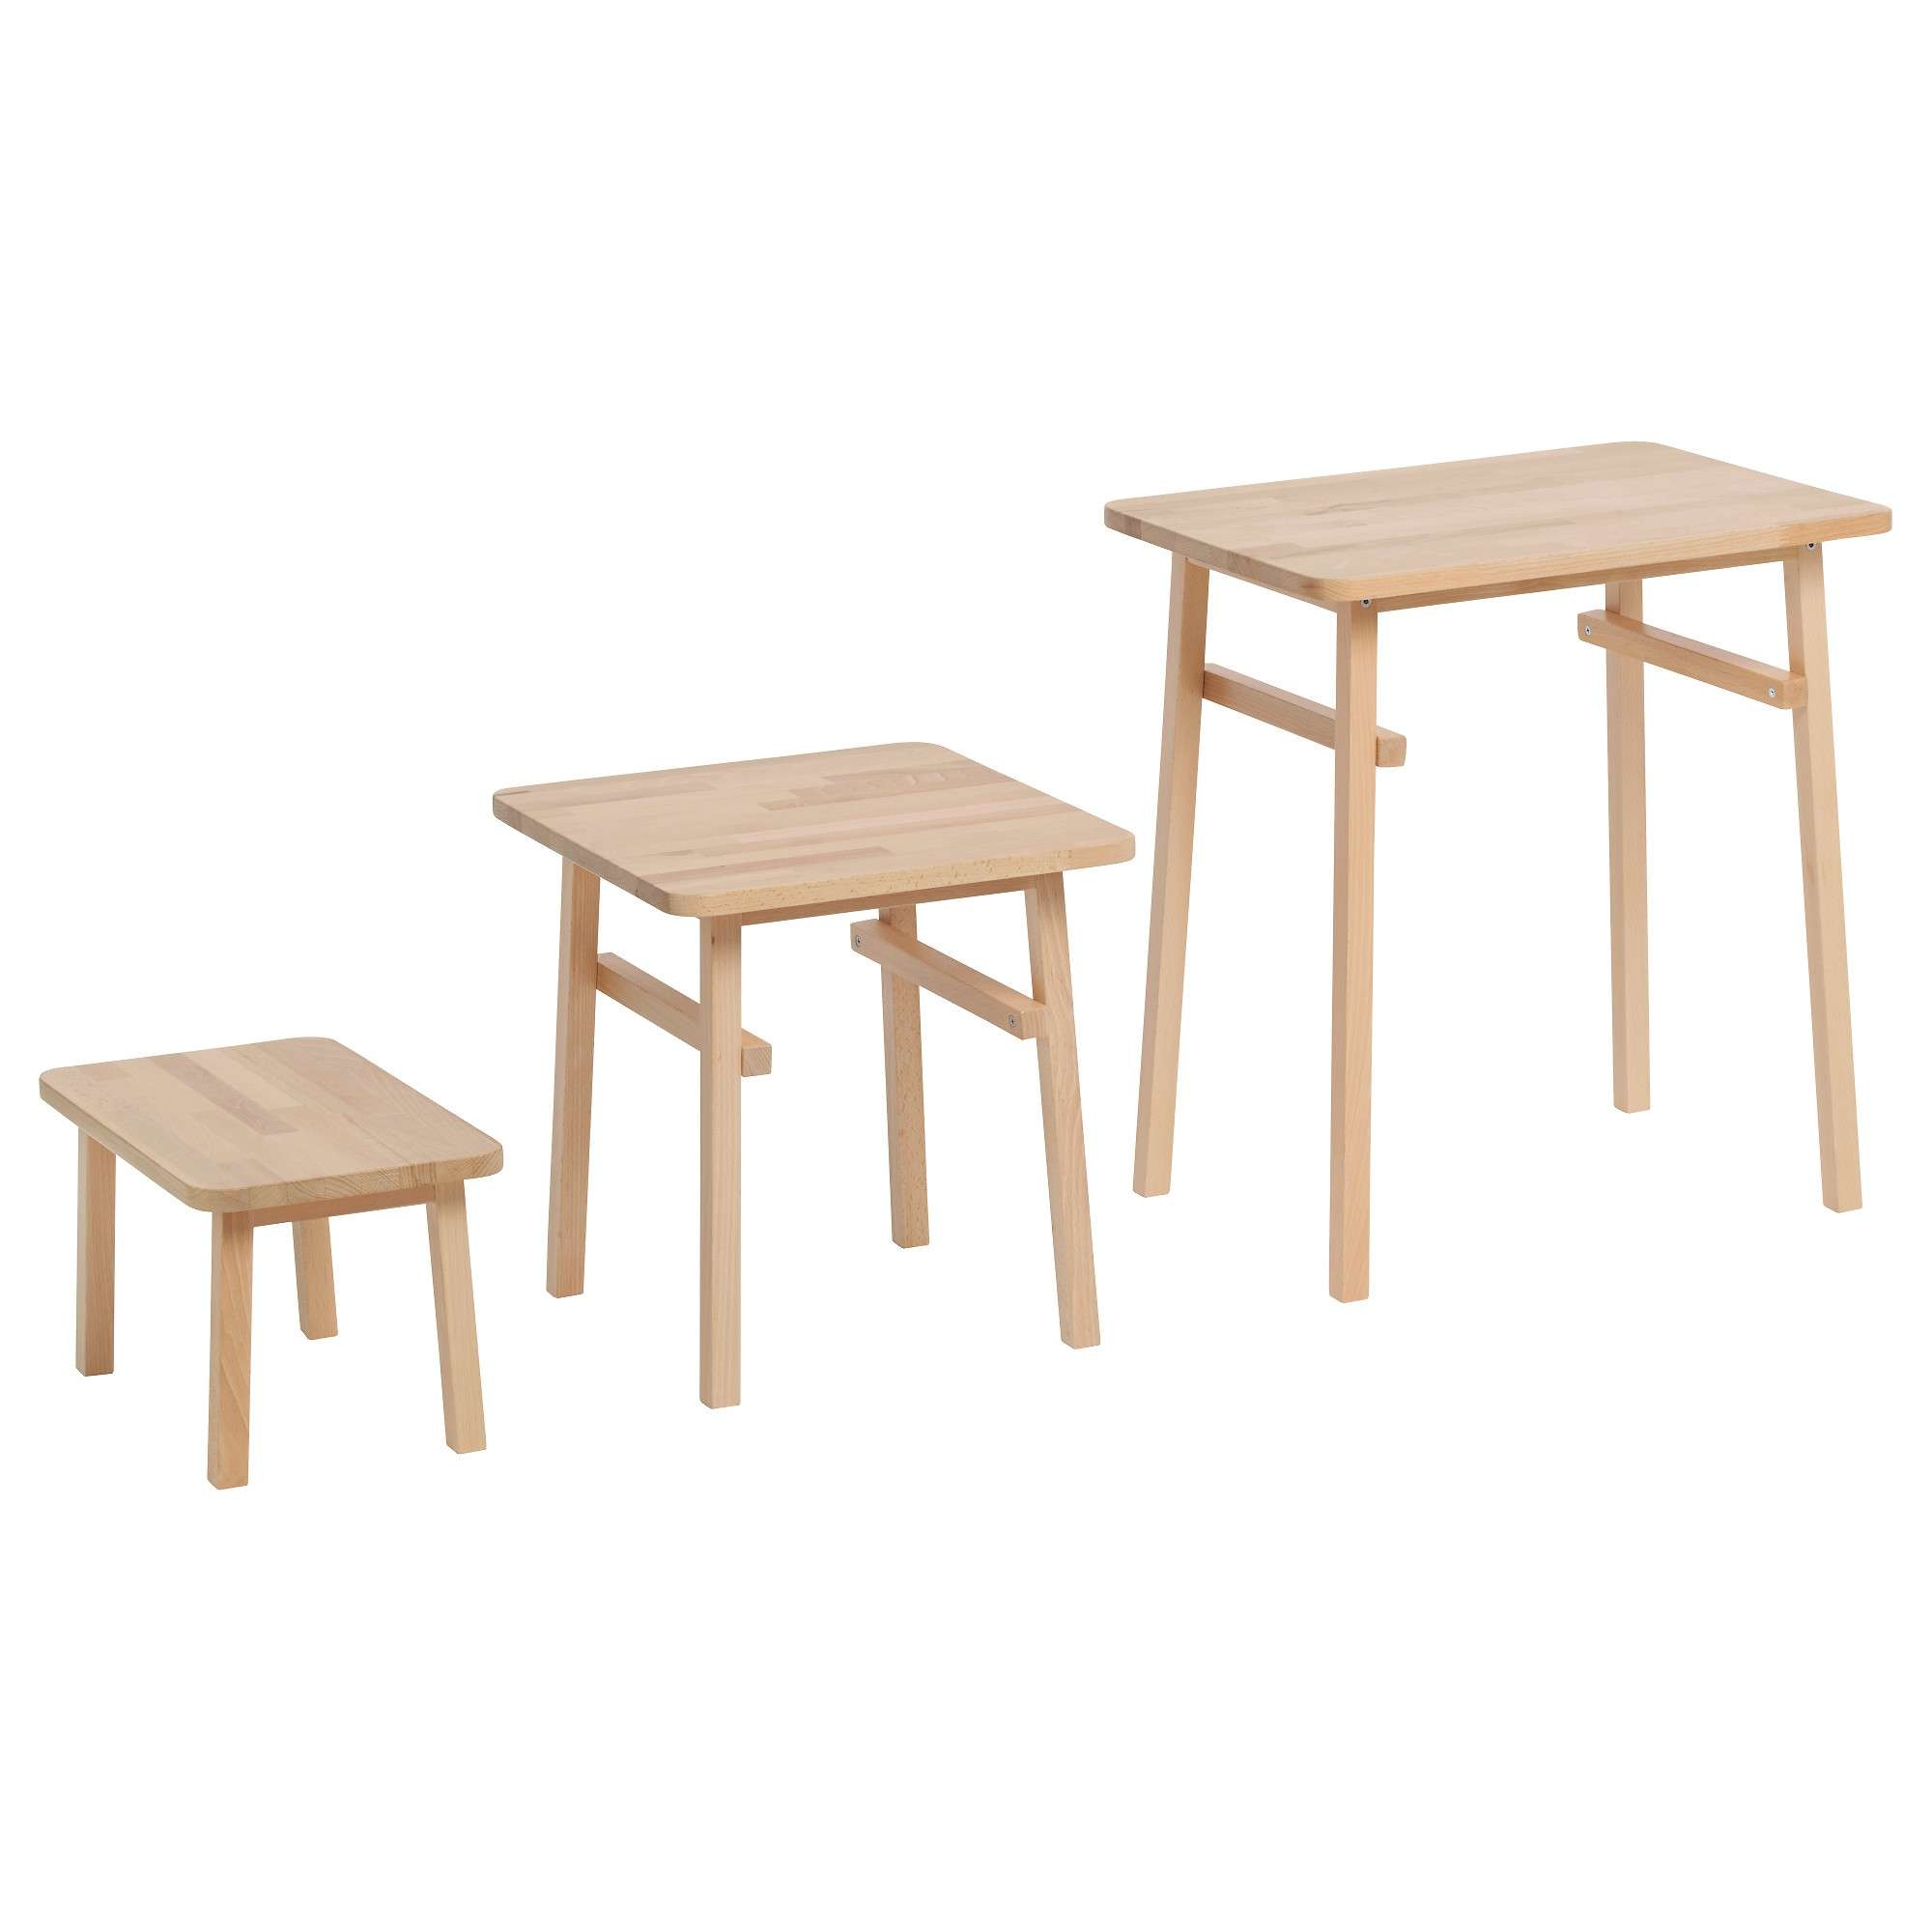 Ypperlig Nest Of Tables, Set Of 3 Beech – Ikea Inside Well Known Beech Coffee Tables (View 20 of 20)